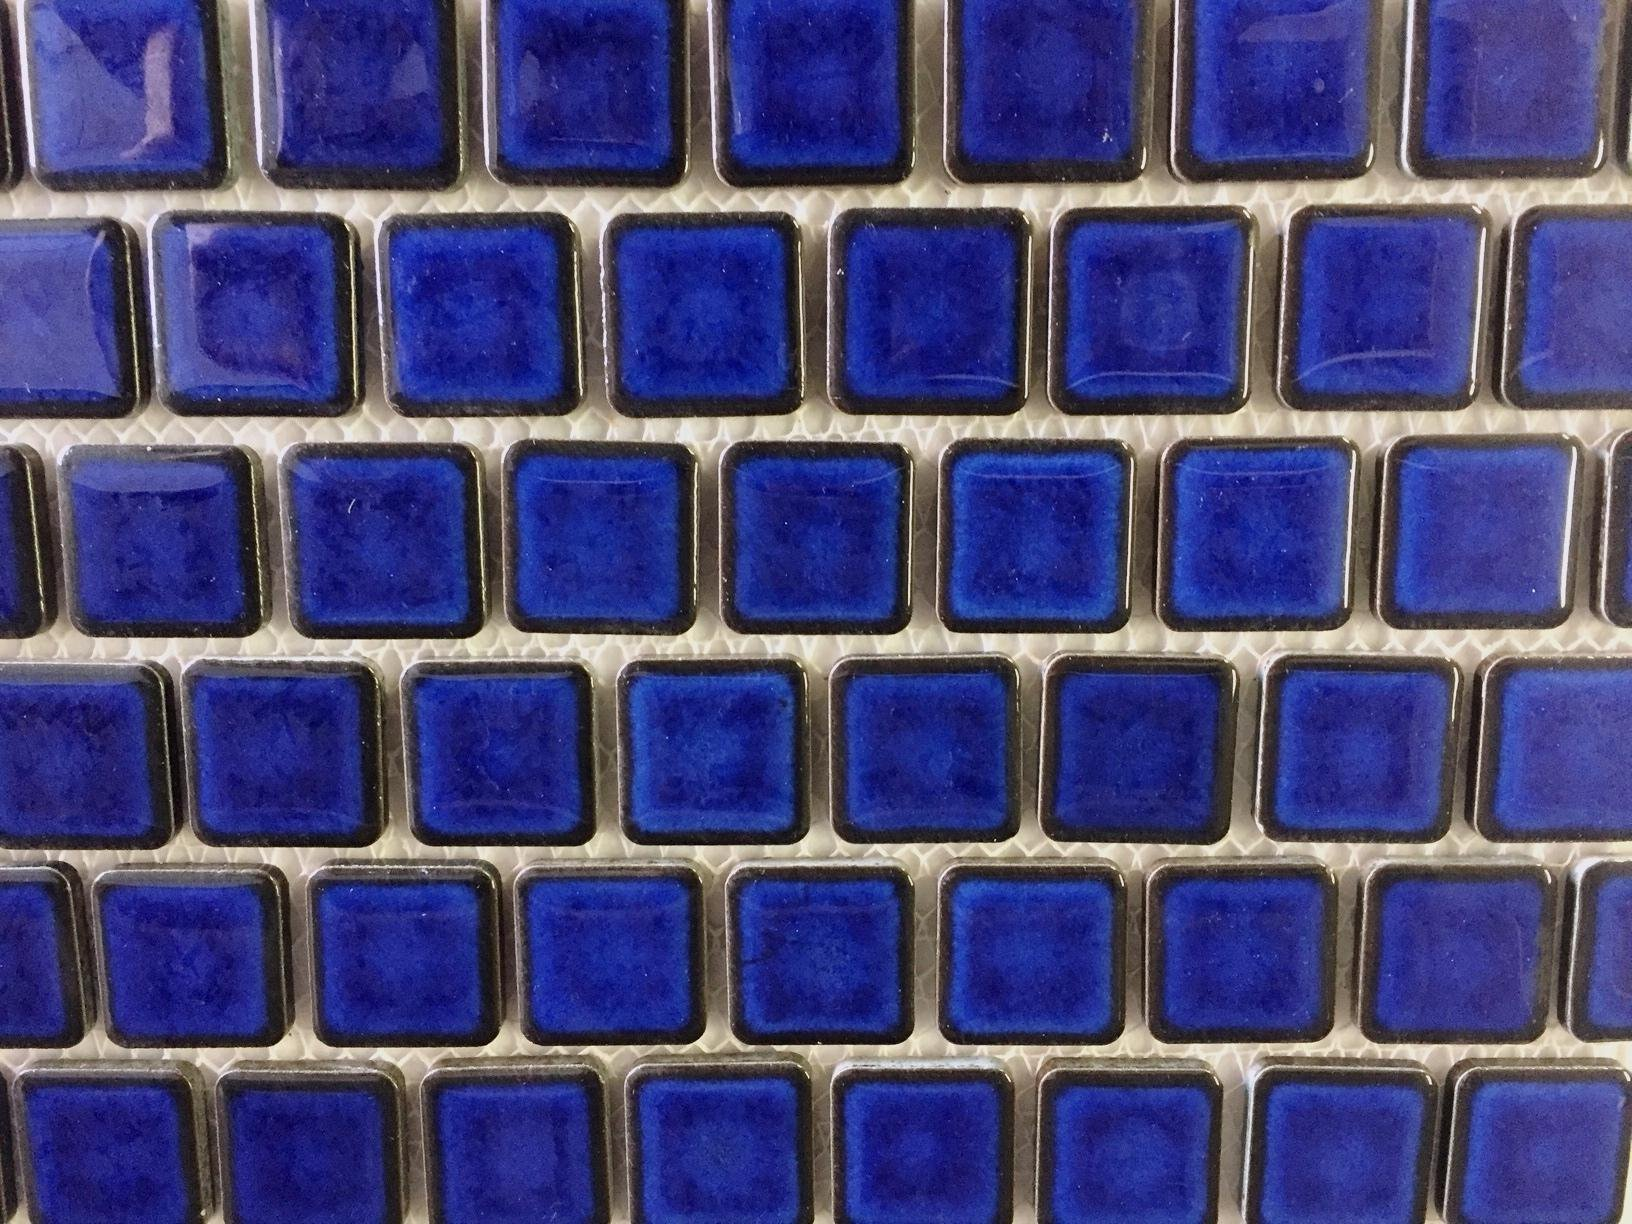 Vogue Premium Quality 1'' x 1'' Cobalt Blue Porcelain Mosaic Tile on Mesh on 12x12 sheet, Designed in Italy (PACK OF 3 SHEETS)